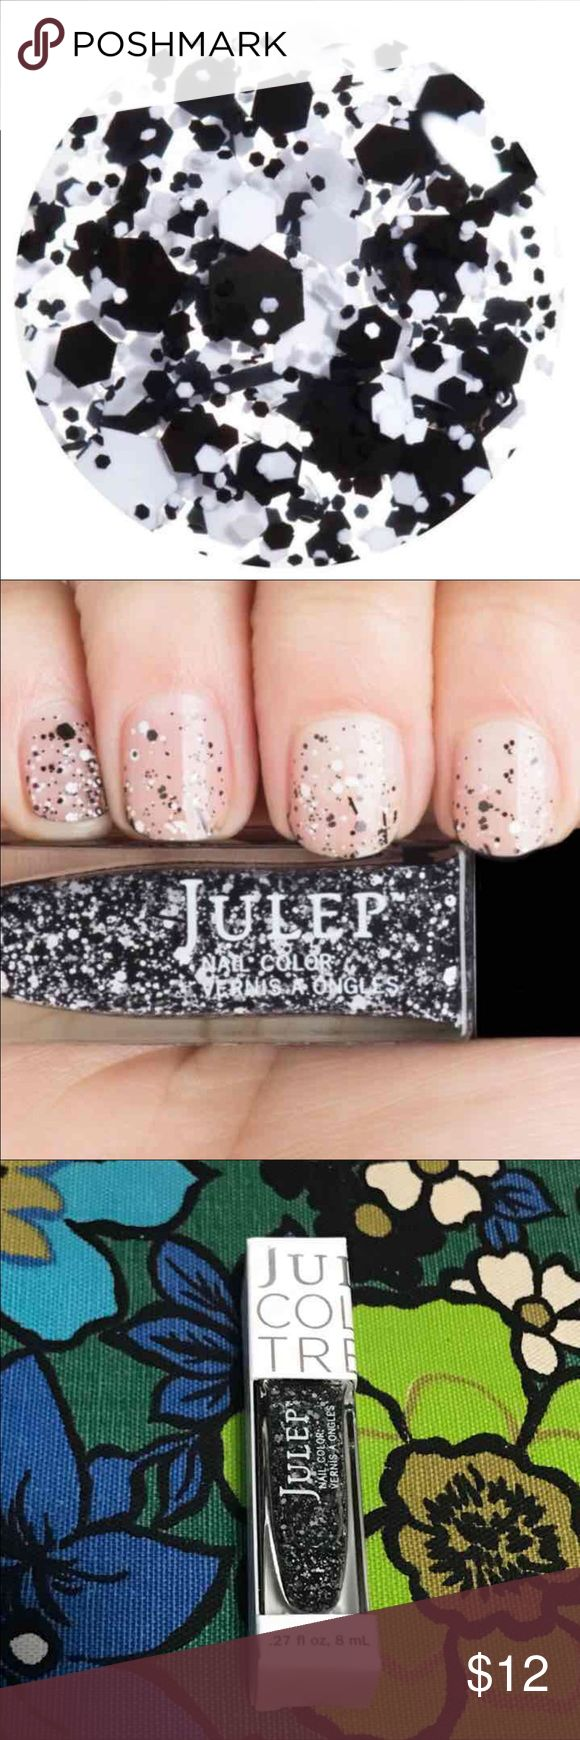 """BNIB Julep Nail Polish Max Graffiti Effect Brand new in box! Julep Nail Polish in color """"Max."""" Really cool black and white graffiti splatter top coat. Typically retails for $14.99.  I do offer a bundle discount! Just let me know :)  #Julep #nailpolish #Polish #max #classic #chic #manicure  #pots #speckled #b&aw #blackandwhite #graffiti #topcoat Sephora Makeup"""